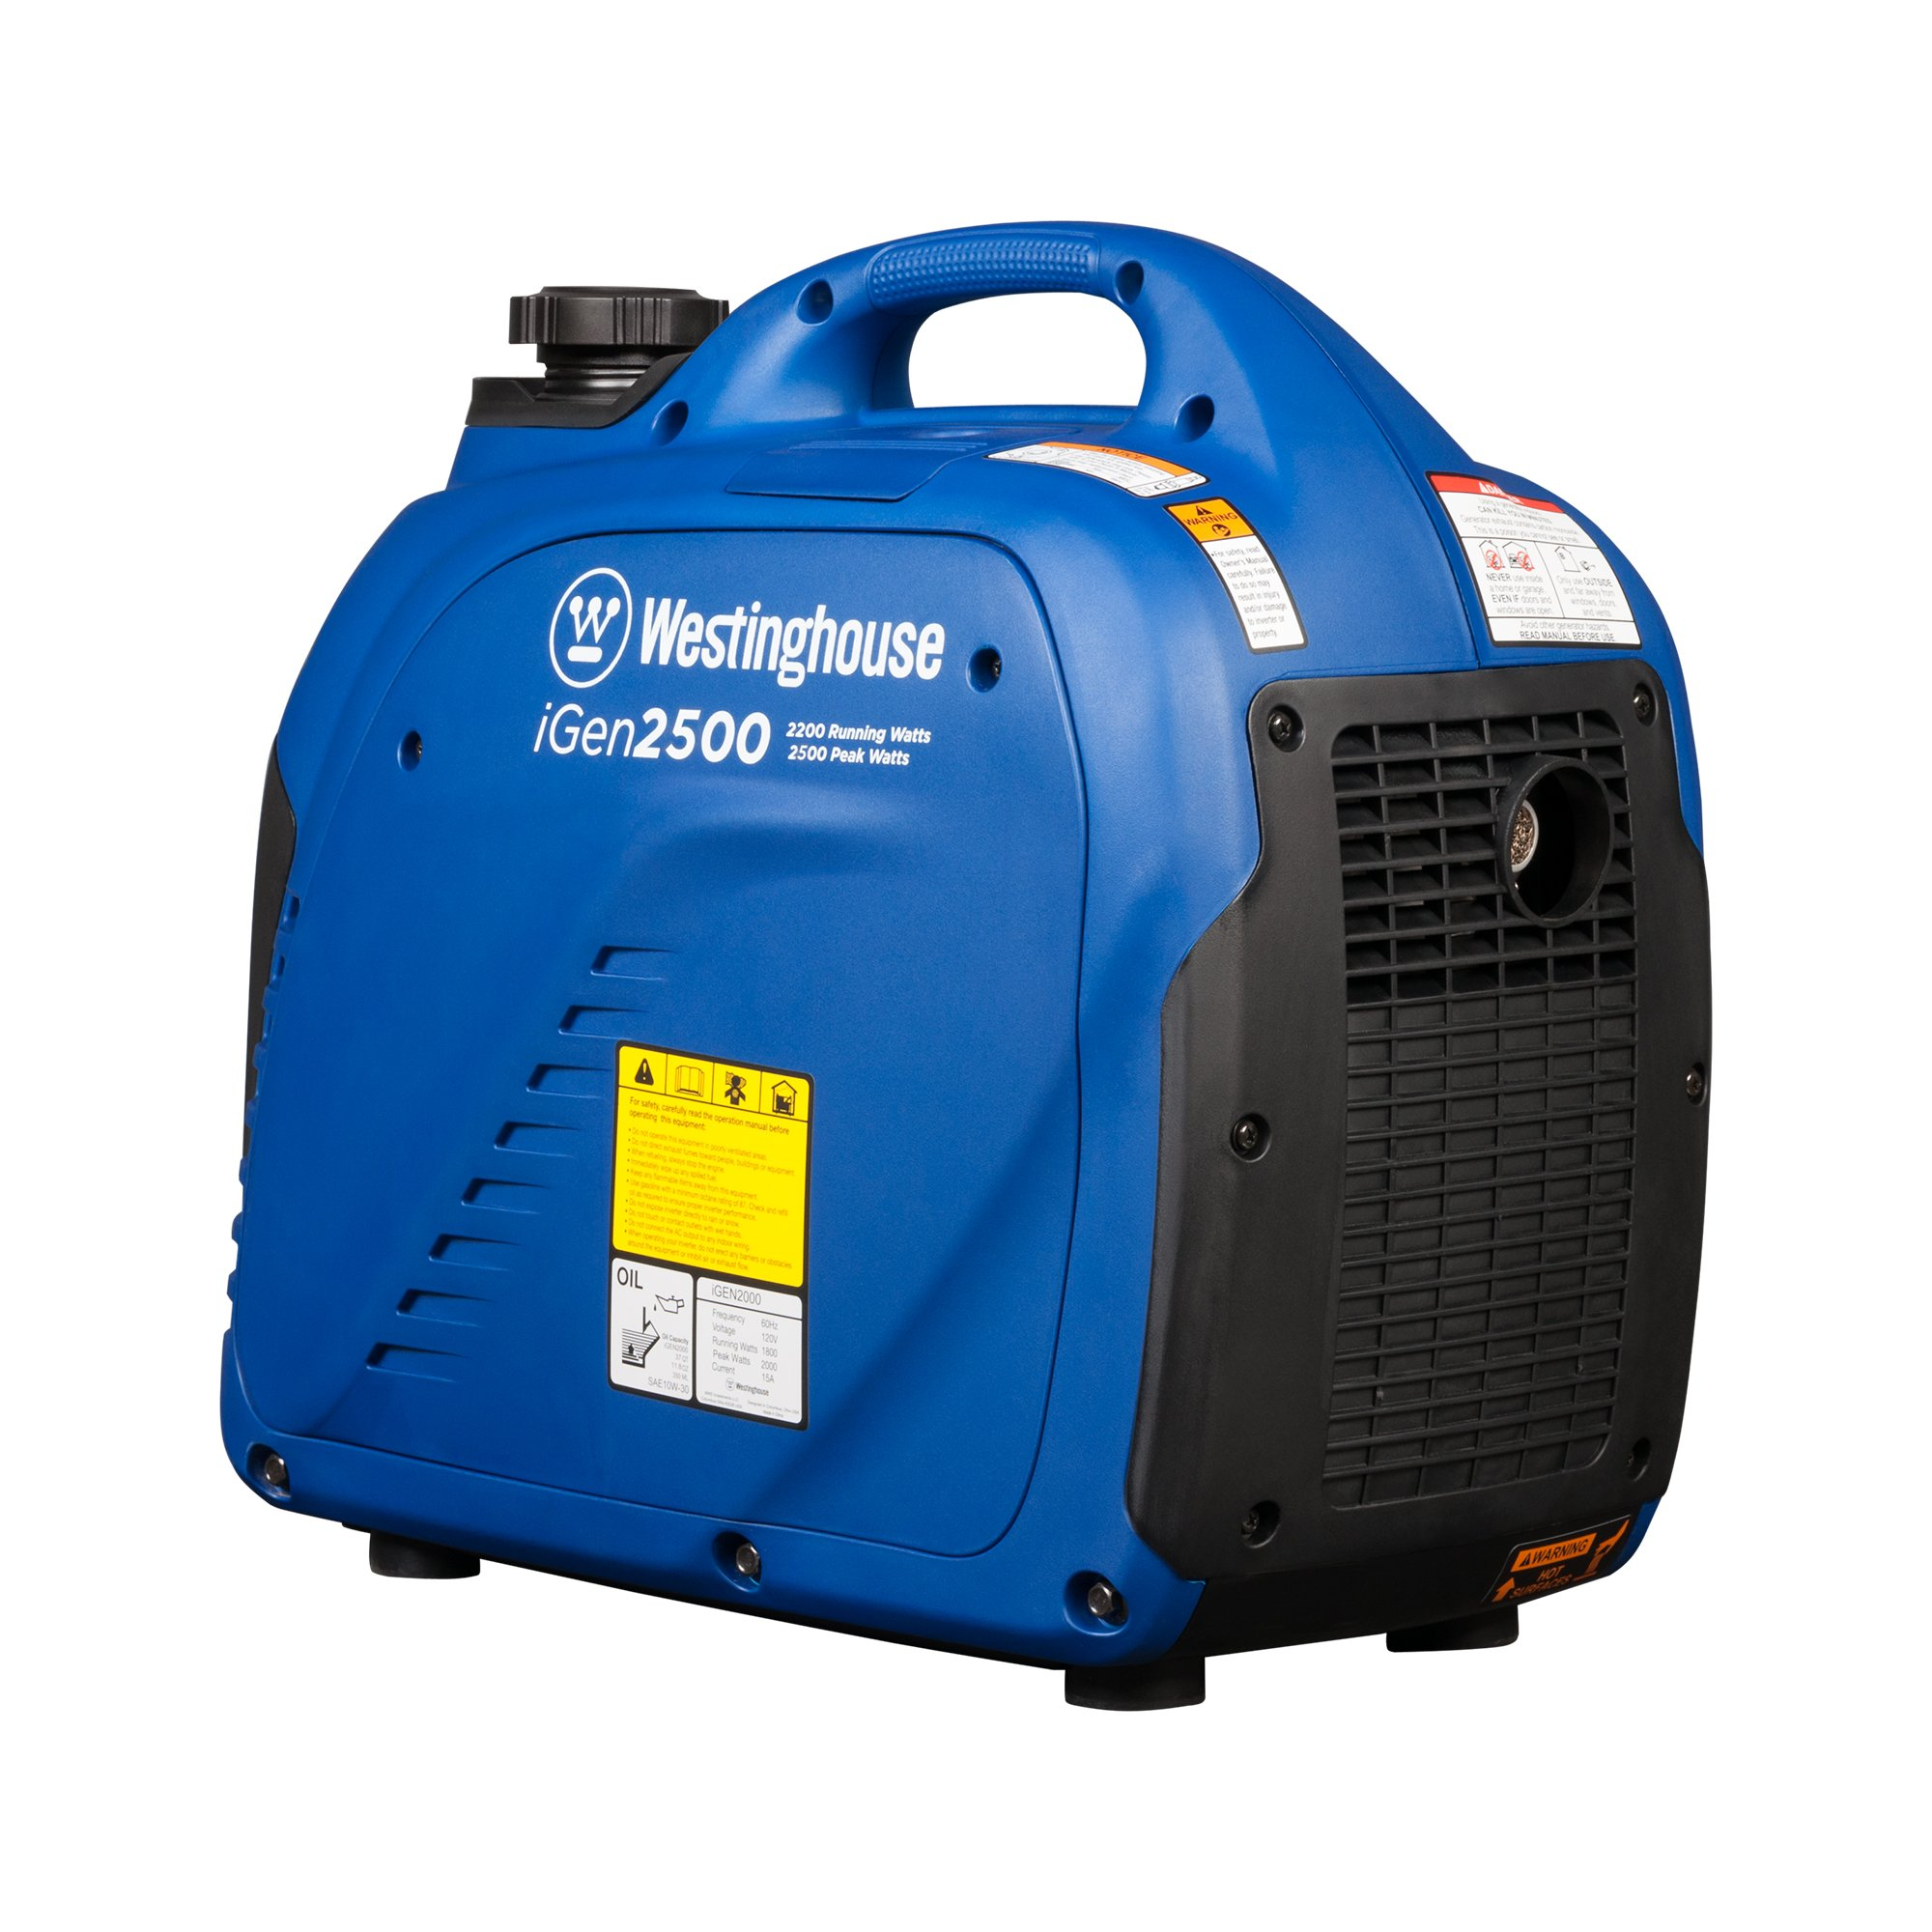 Westinghouse iGen2500 Portable Inverter Generator - 2200 Rated Watts & 2500 Peak Watts - Gas Powered - CARB Compliant by Westinghouse (Image #1)